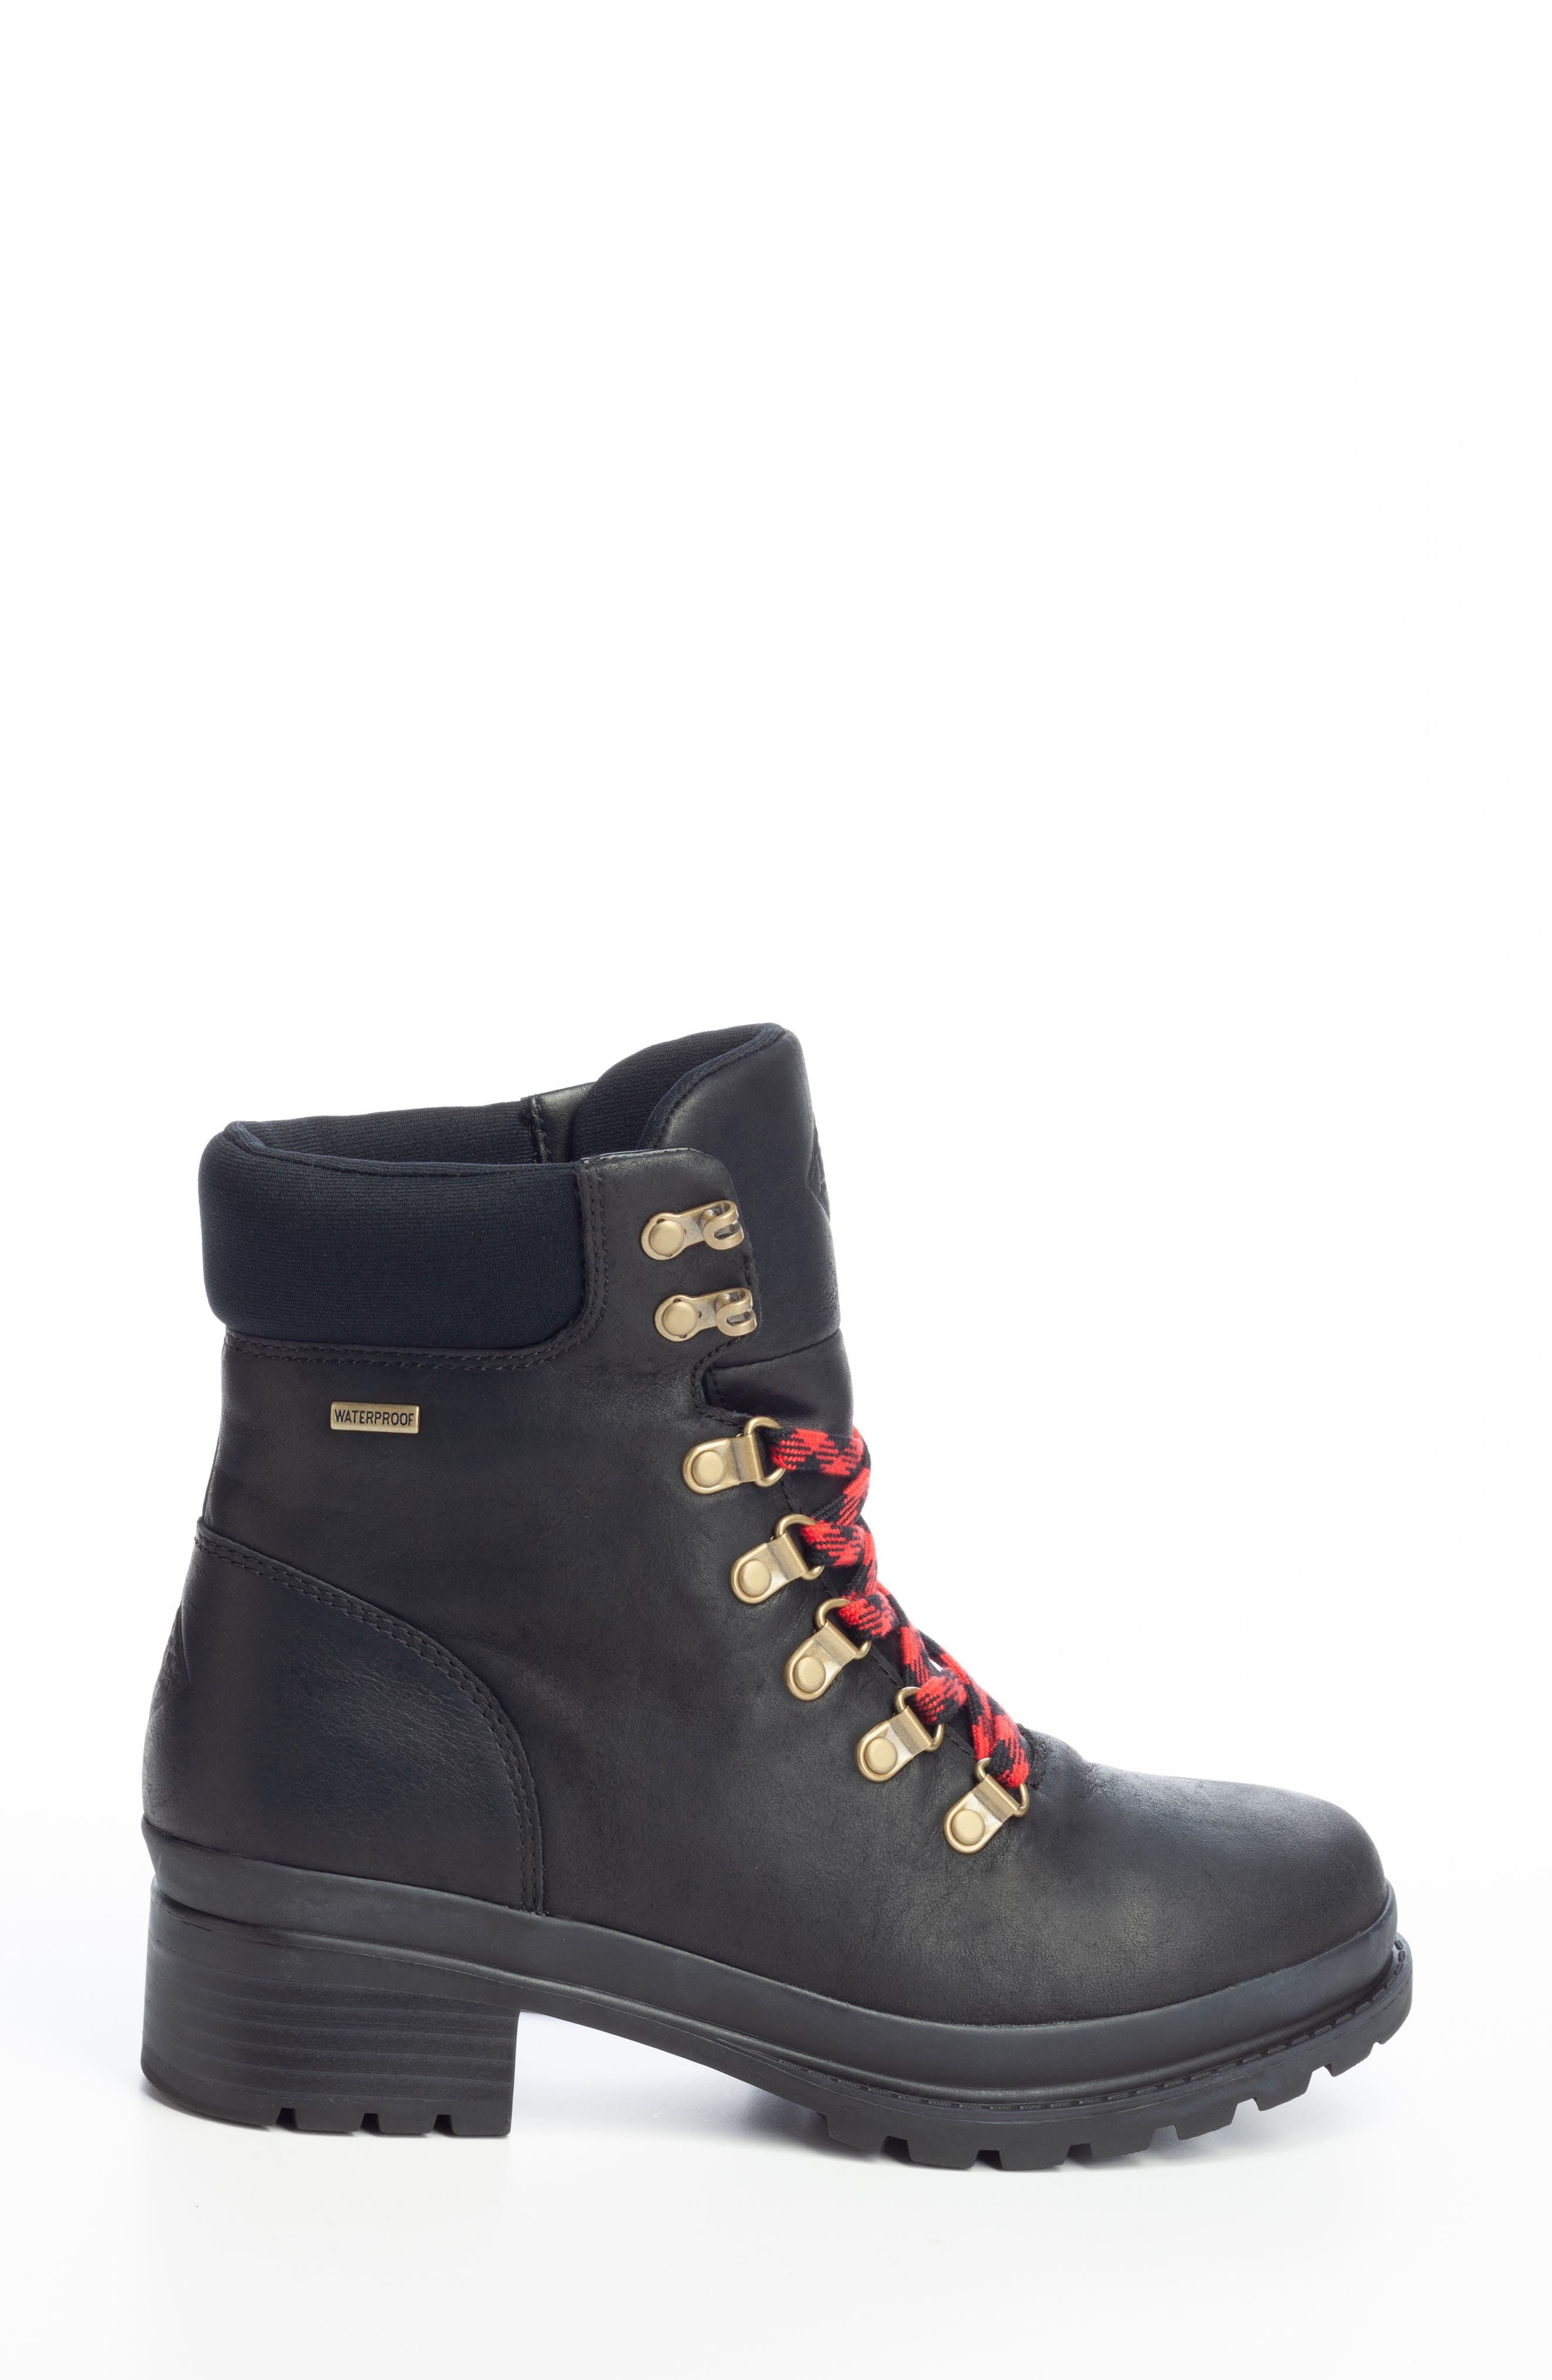 Liberty Alpine Waterproof Hiker Boot,                             Alternate thumbnail 3, color,                             BLACK LEATHER